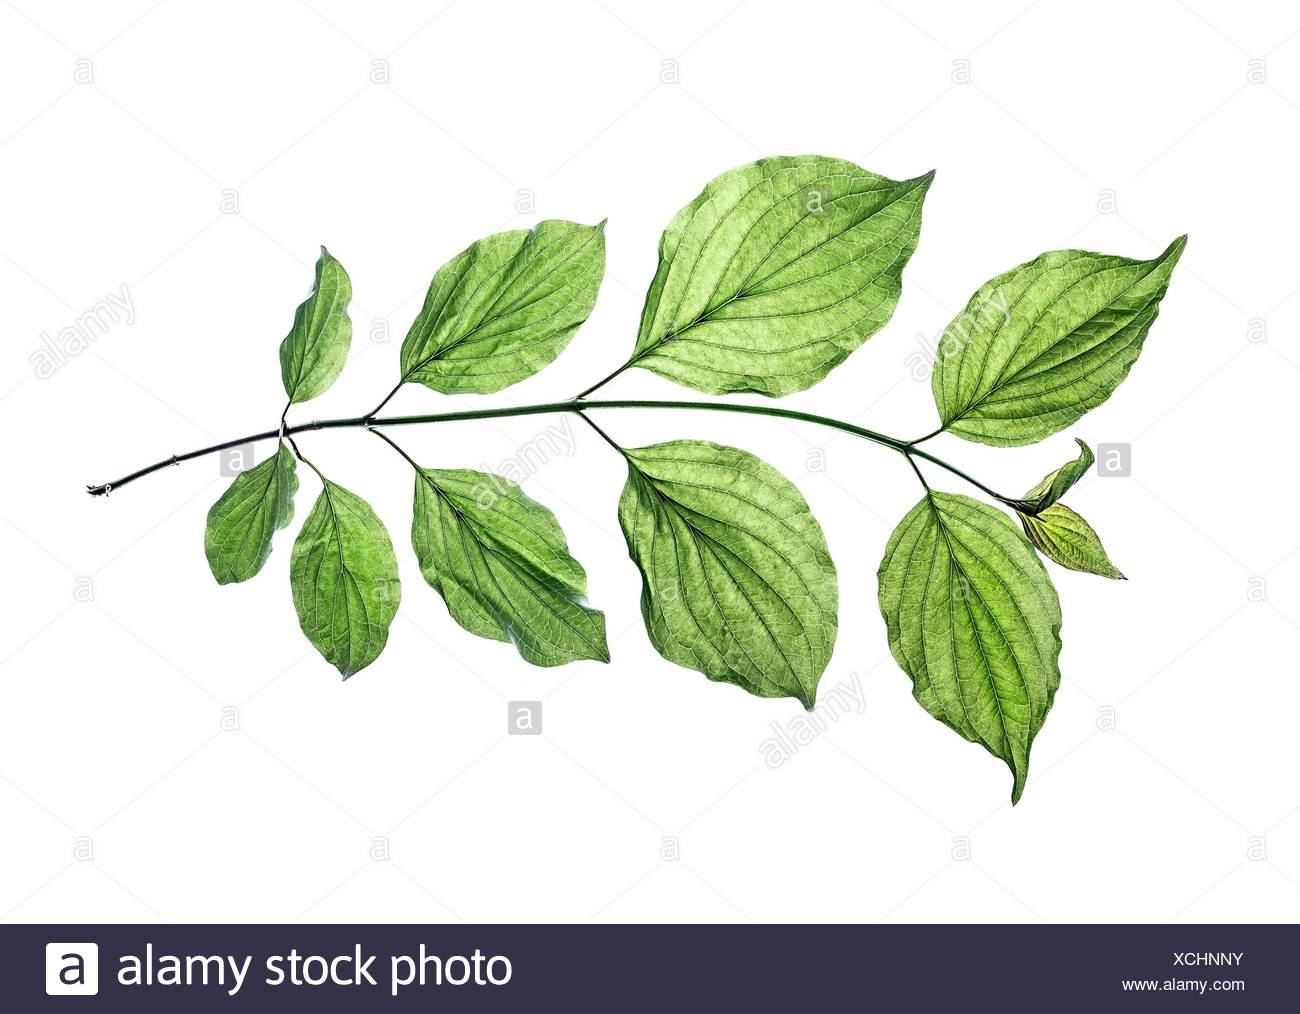 Twig of Philadelphus - Stock Image